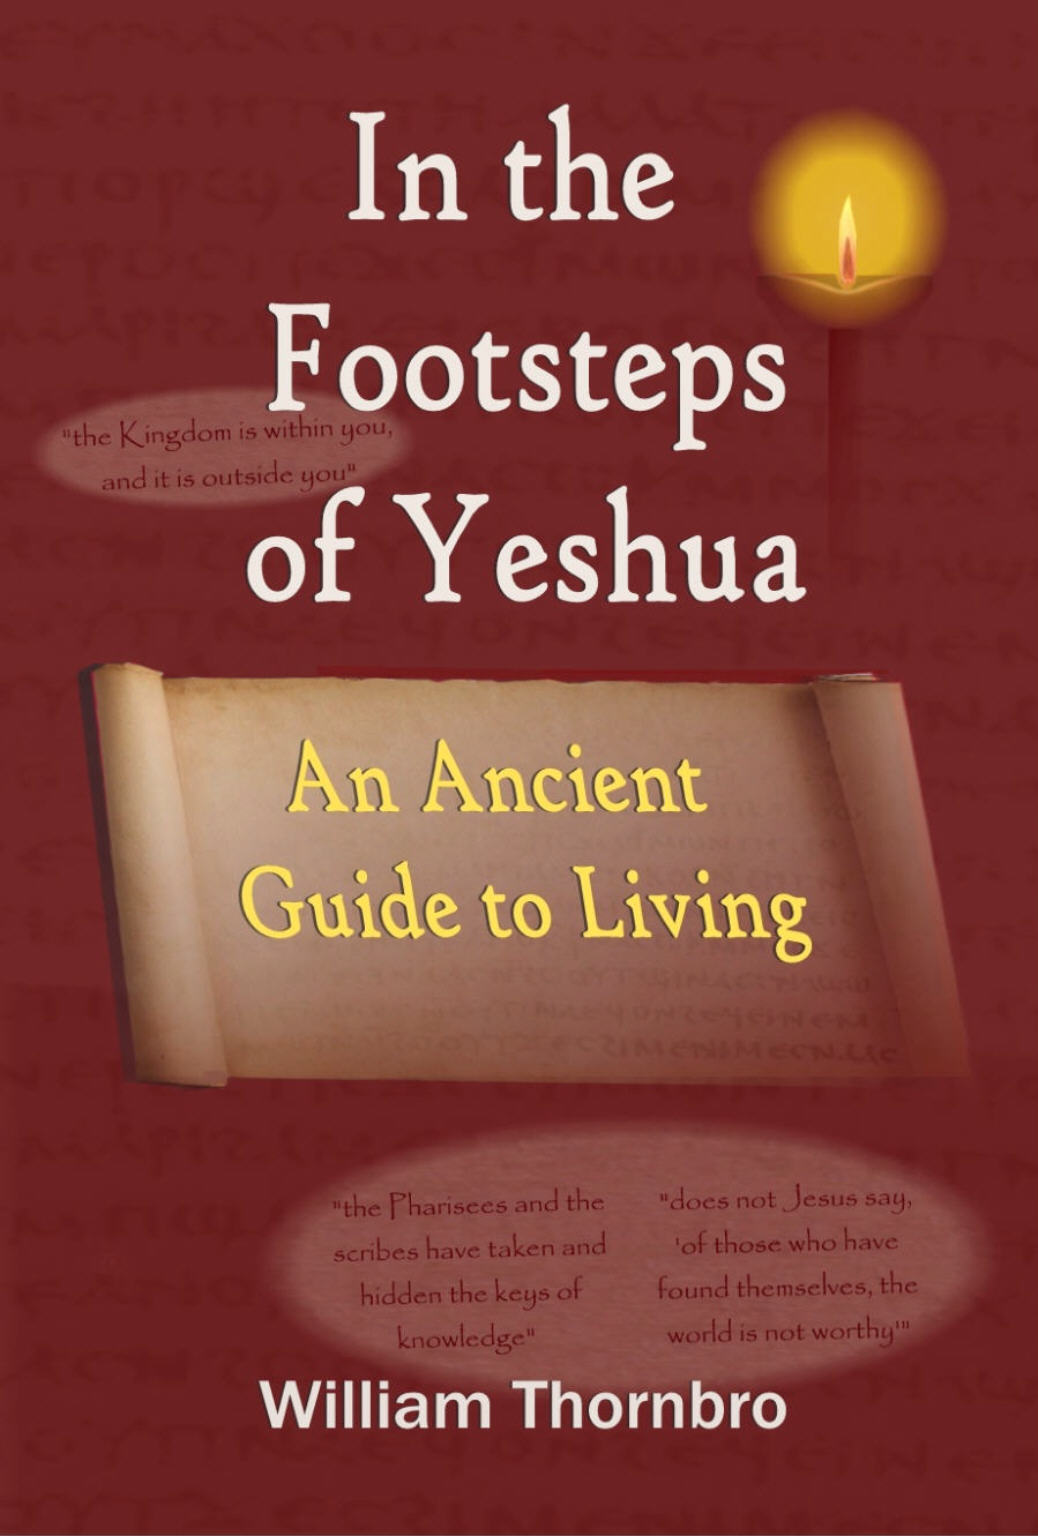 IN THE FOOTSTEPS OF YESHUA